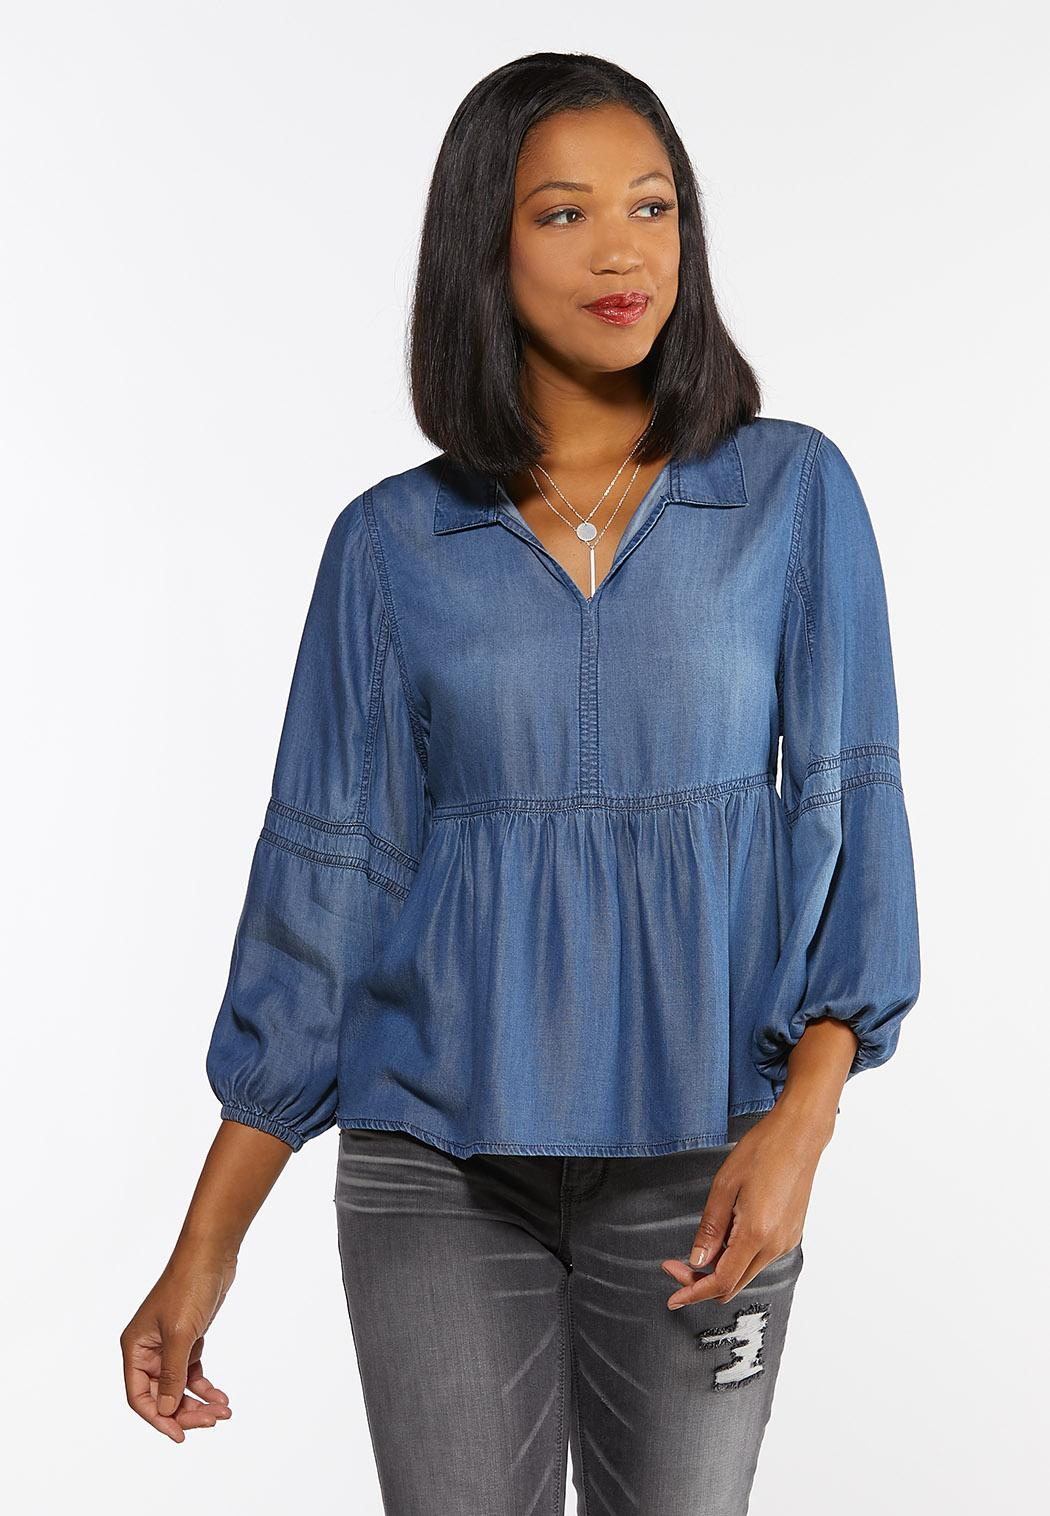 Chambray Peplum Top Tops Cato Fashions 28,913 results for peplum tops. chambray peplum top tops cato fashions